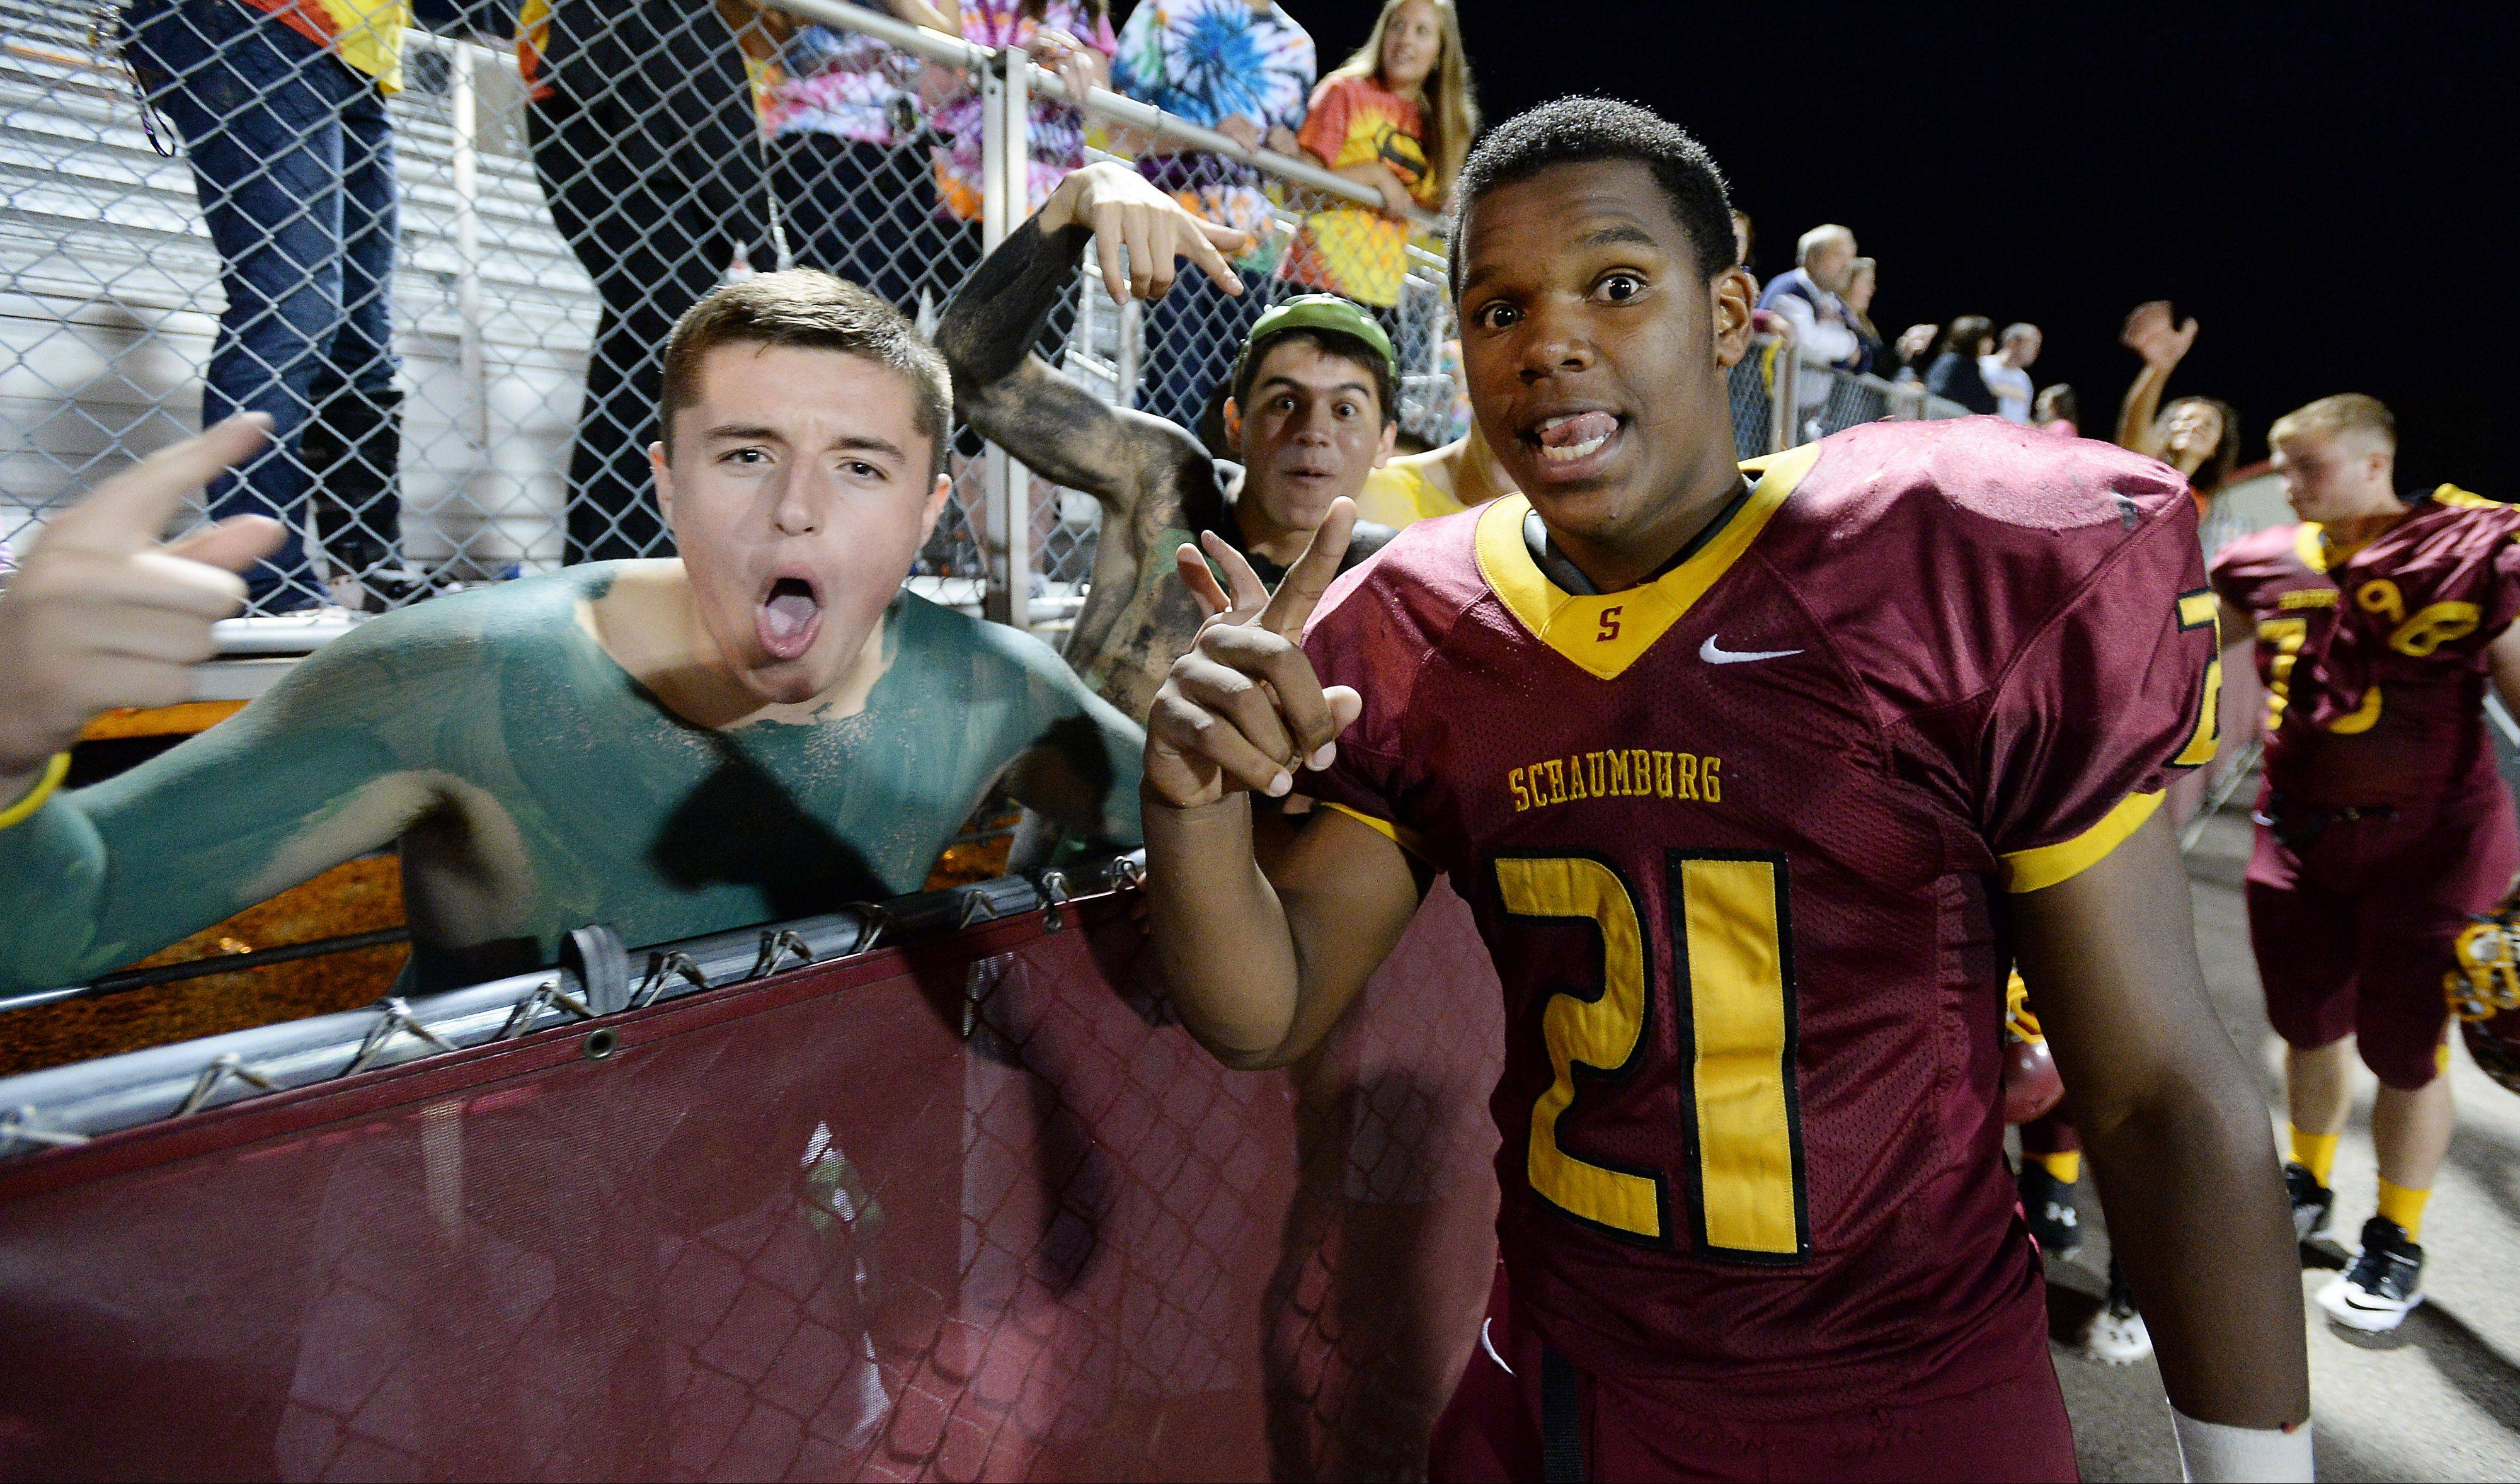 Schaumburg's Justice Macneal-Young celebrates with the fans after the Saxons topped Barrington 33-21 in matchup of unbeaten teams. Young finish with 3 touchdowns.